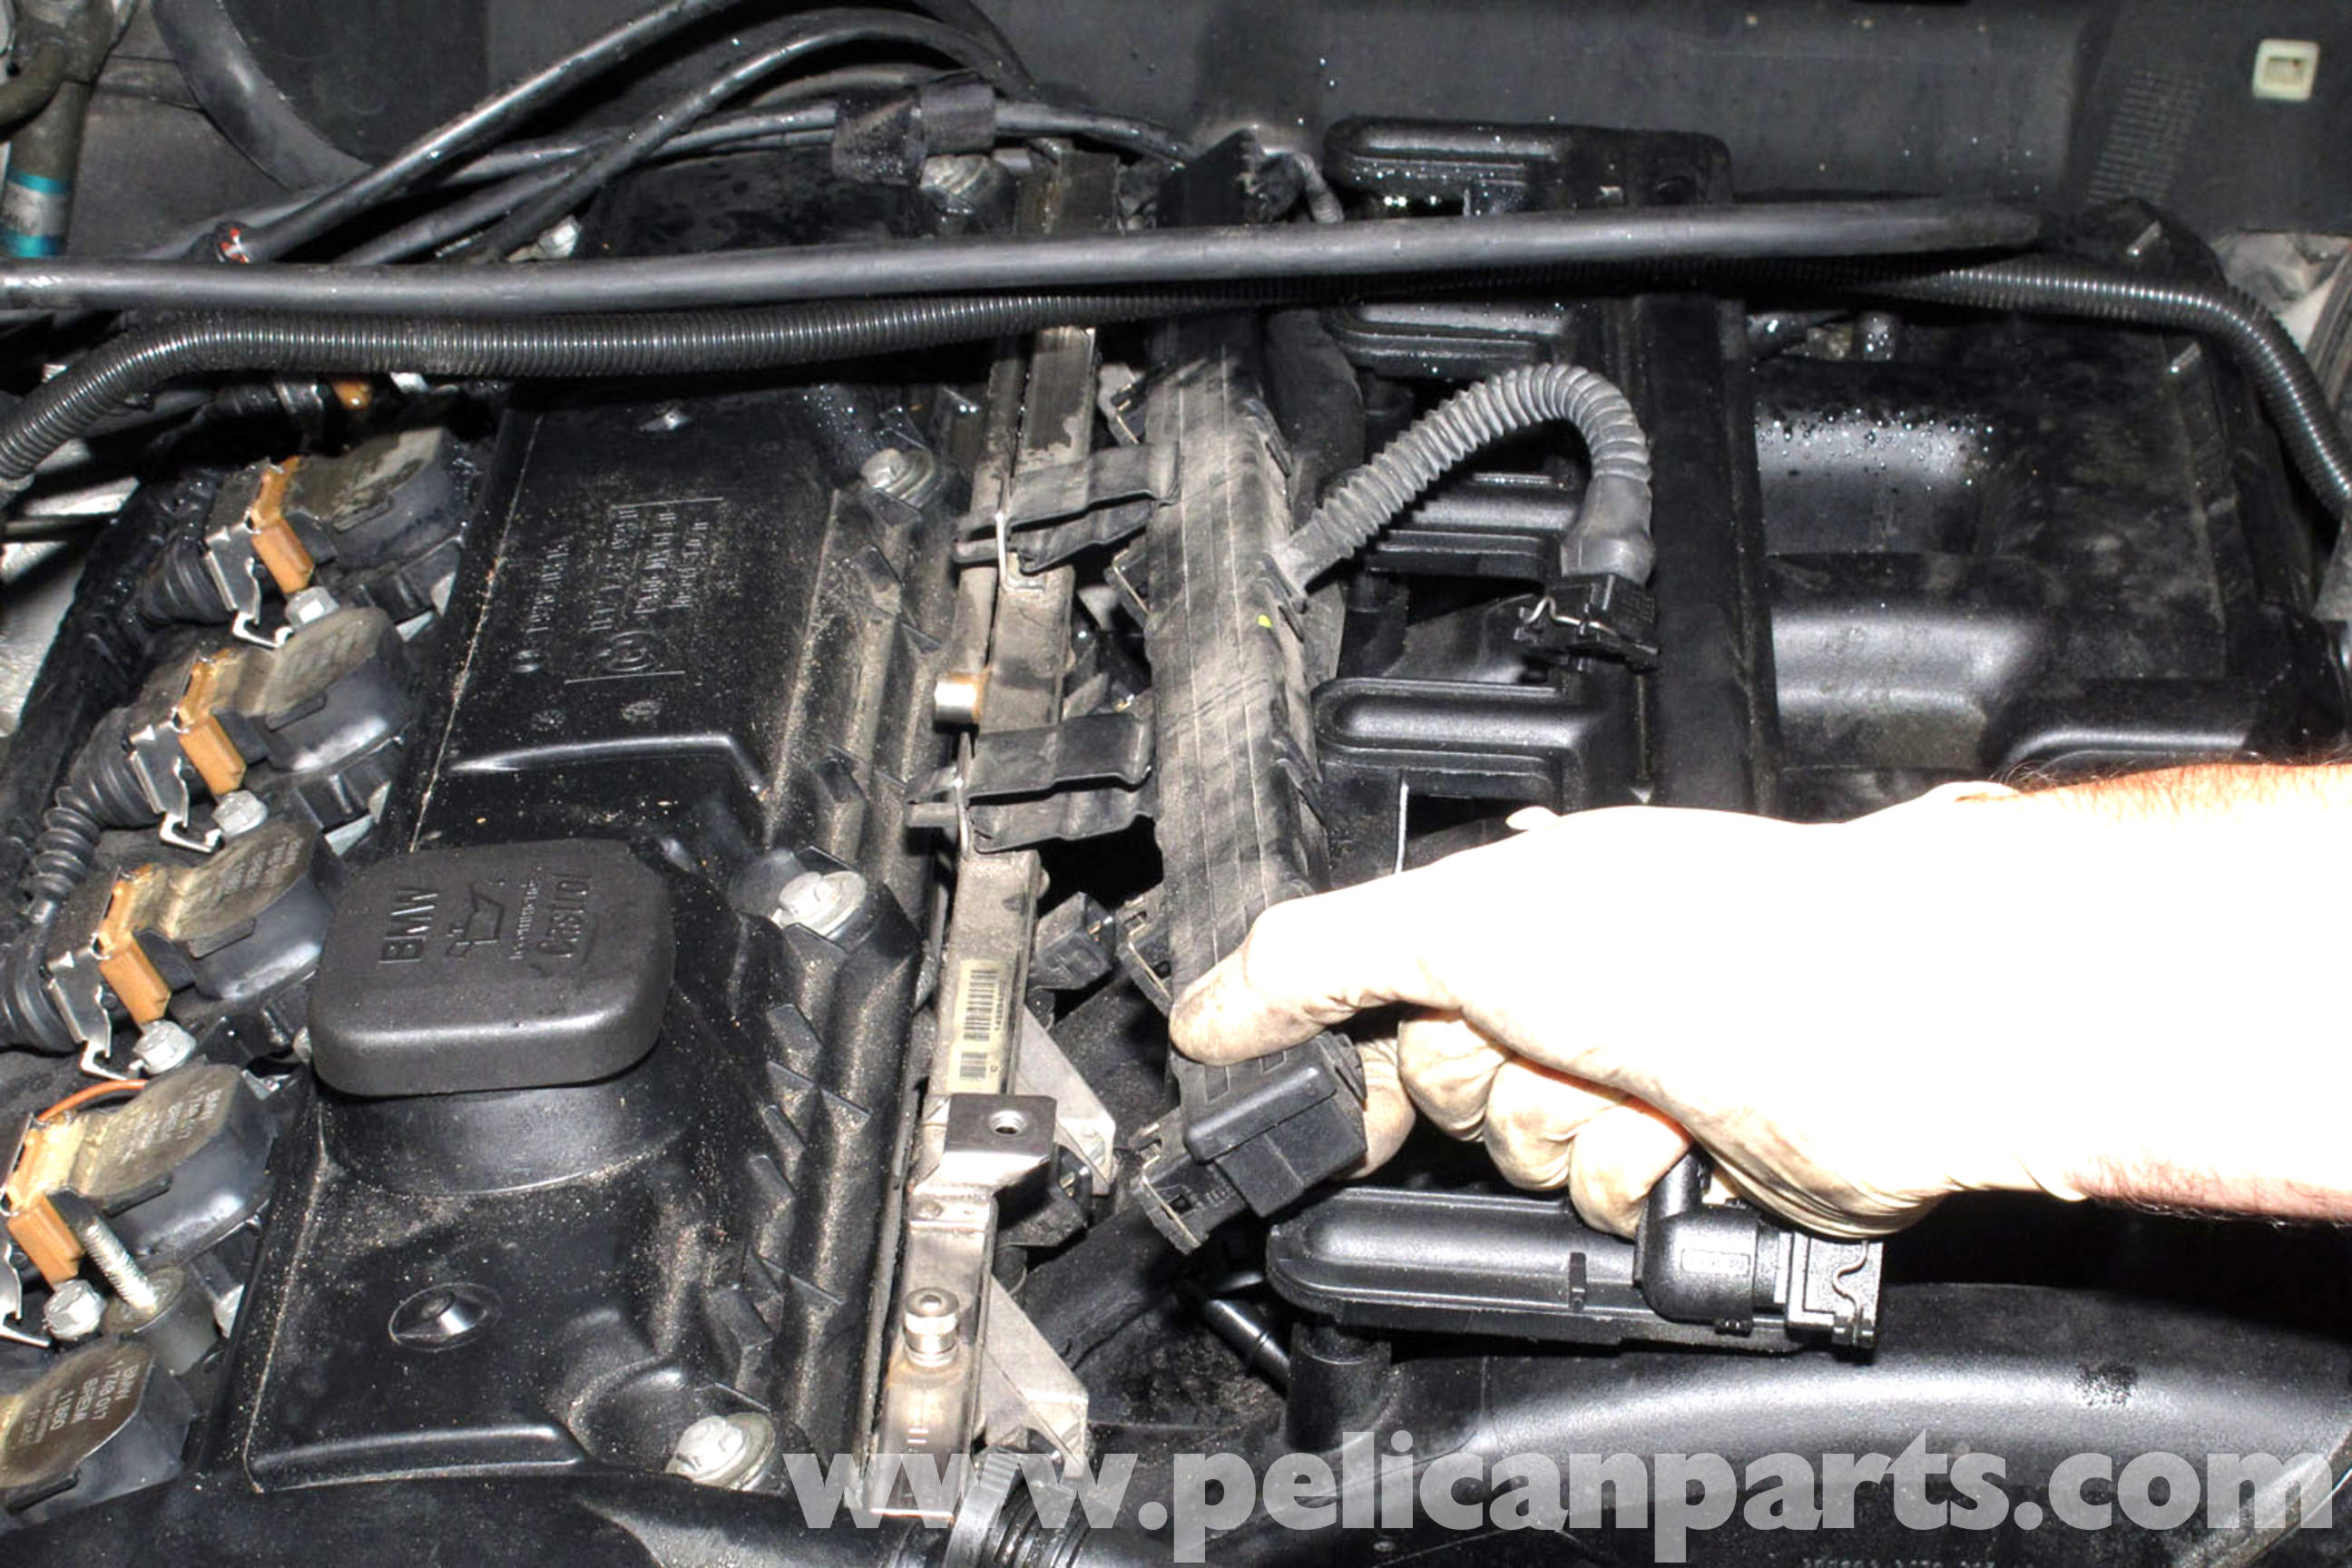 pic07 bmw e46 fuel injector replacement bmw 325i (2001 2005), bmw 325xi